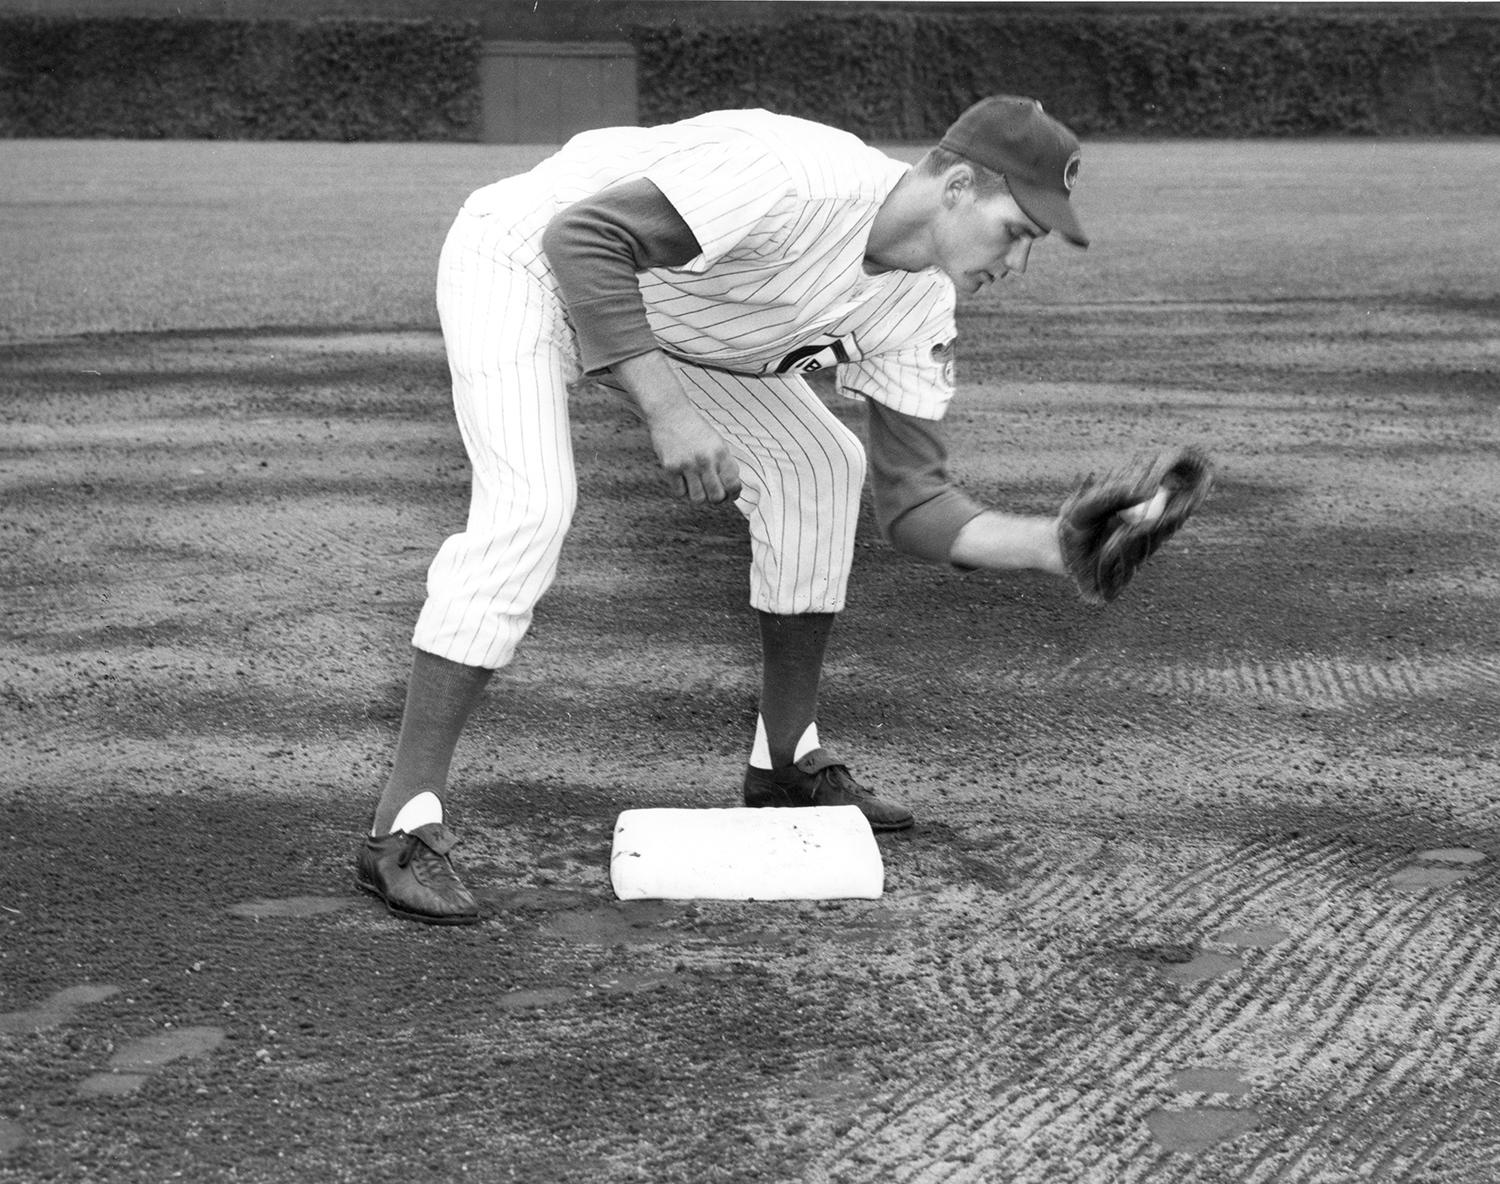 In 1962, Ken Hubbs set two major league records by playing more consecutive errorless games (78) and handling more consecutive chances (418) than any second baseman to that point in history. (National Baseball Hall of Fame and Museum)